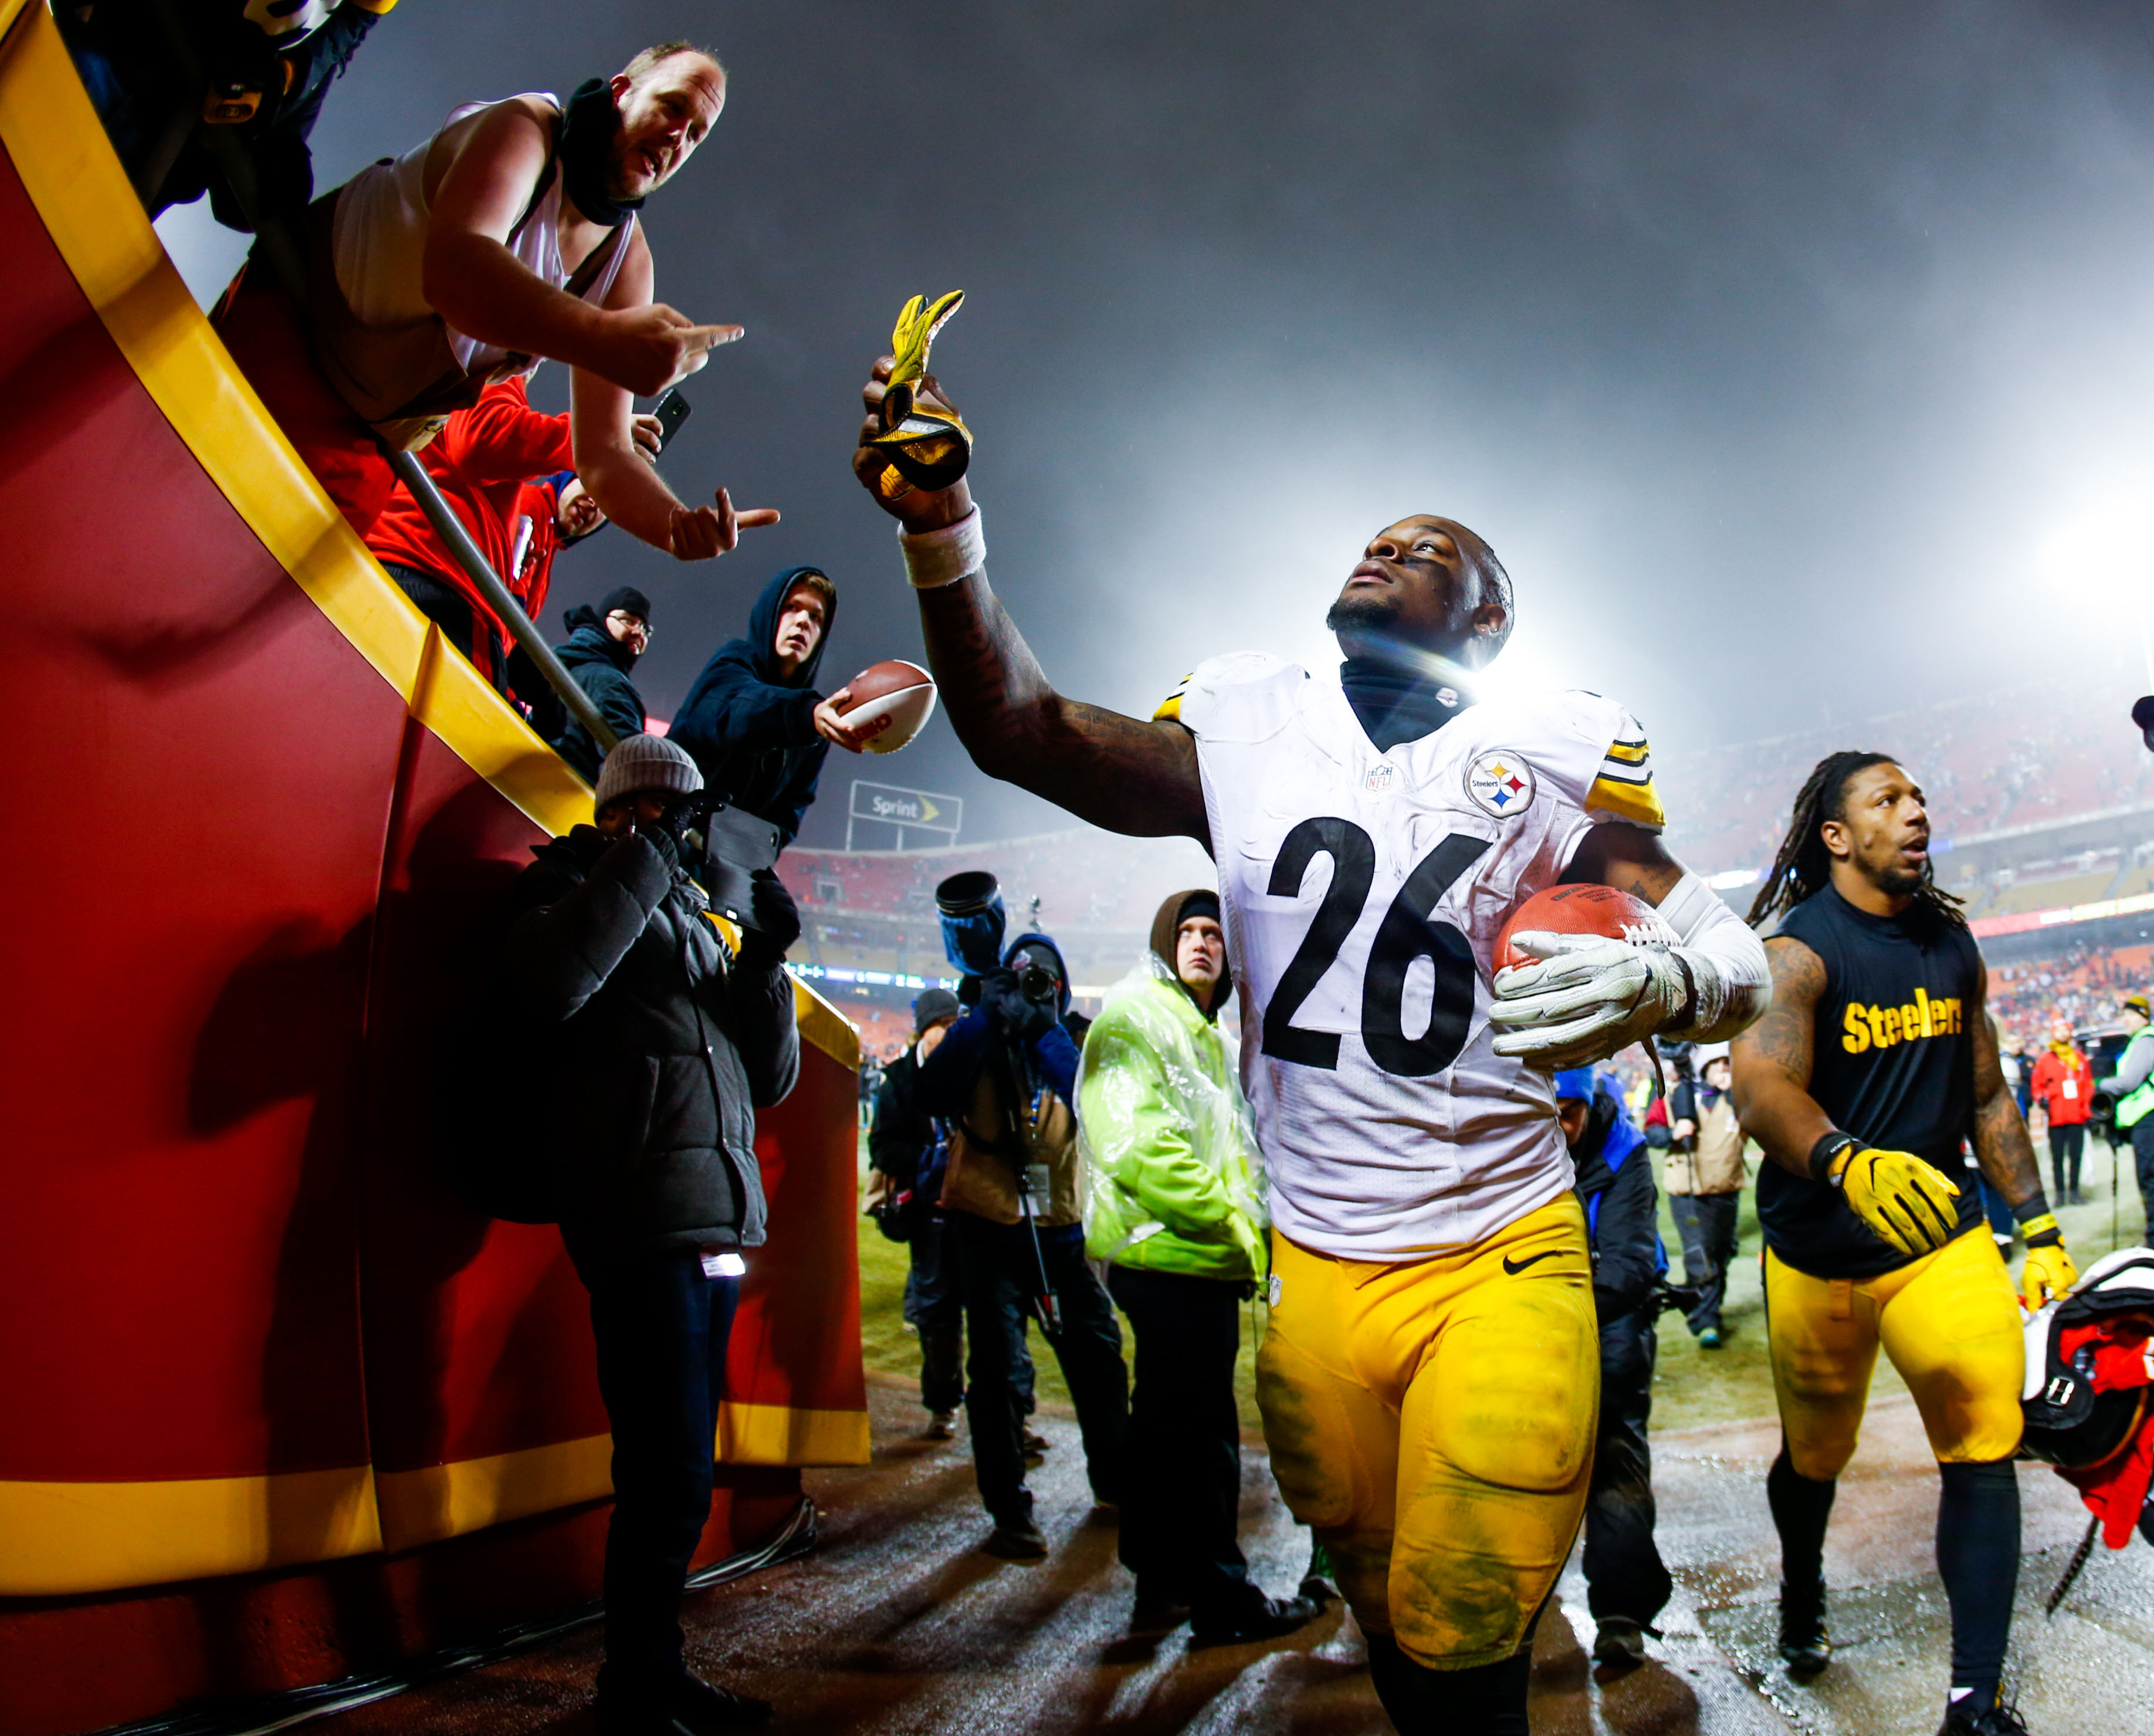 Behind the steel curtain commercial - Steelers And Le Veon Bell Fail To Get Long Term Deal Done And The Waiting Begins The Team Waited Till The Last Possible Day But A Deal Was Not Able To Be